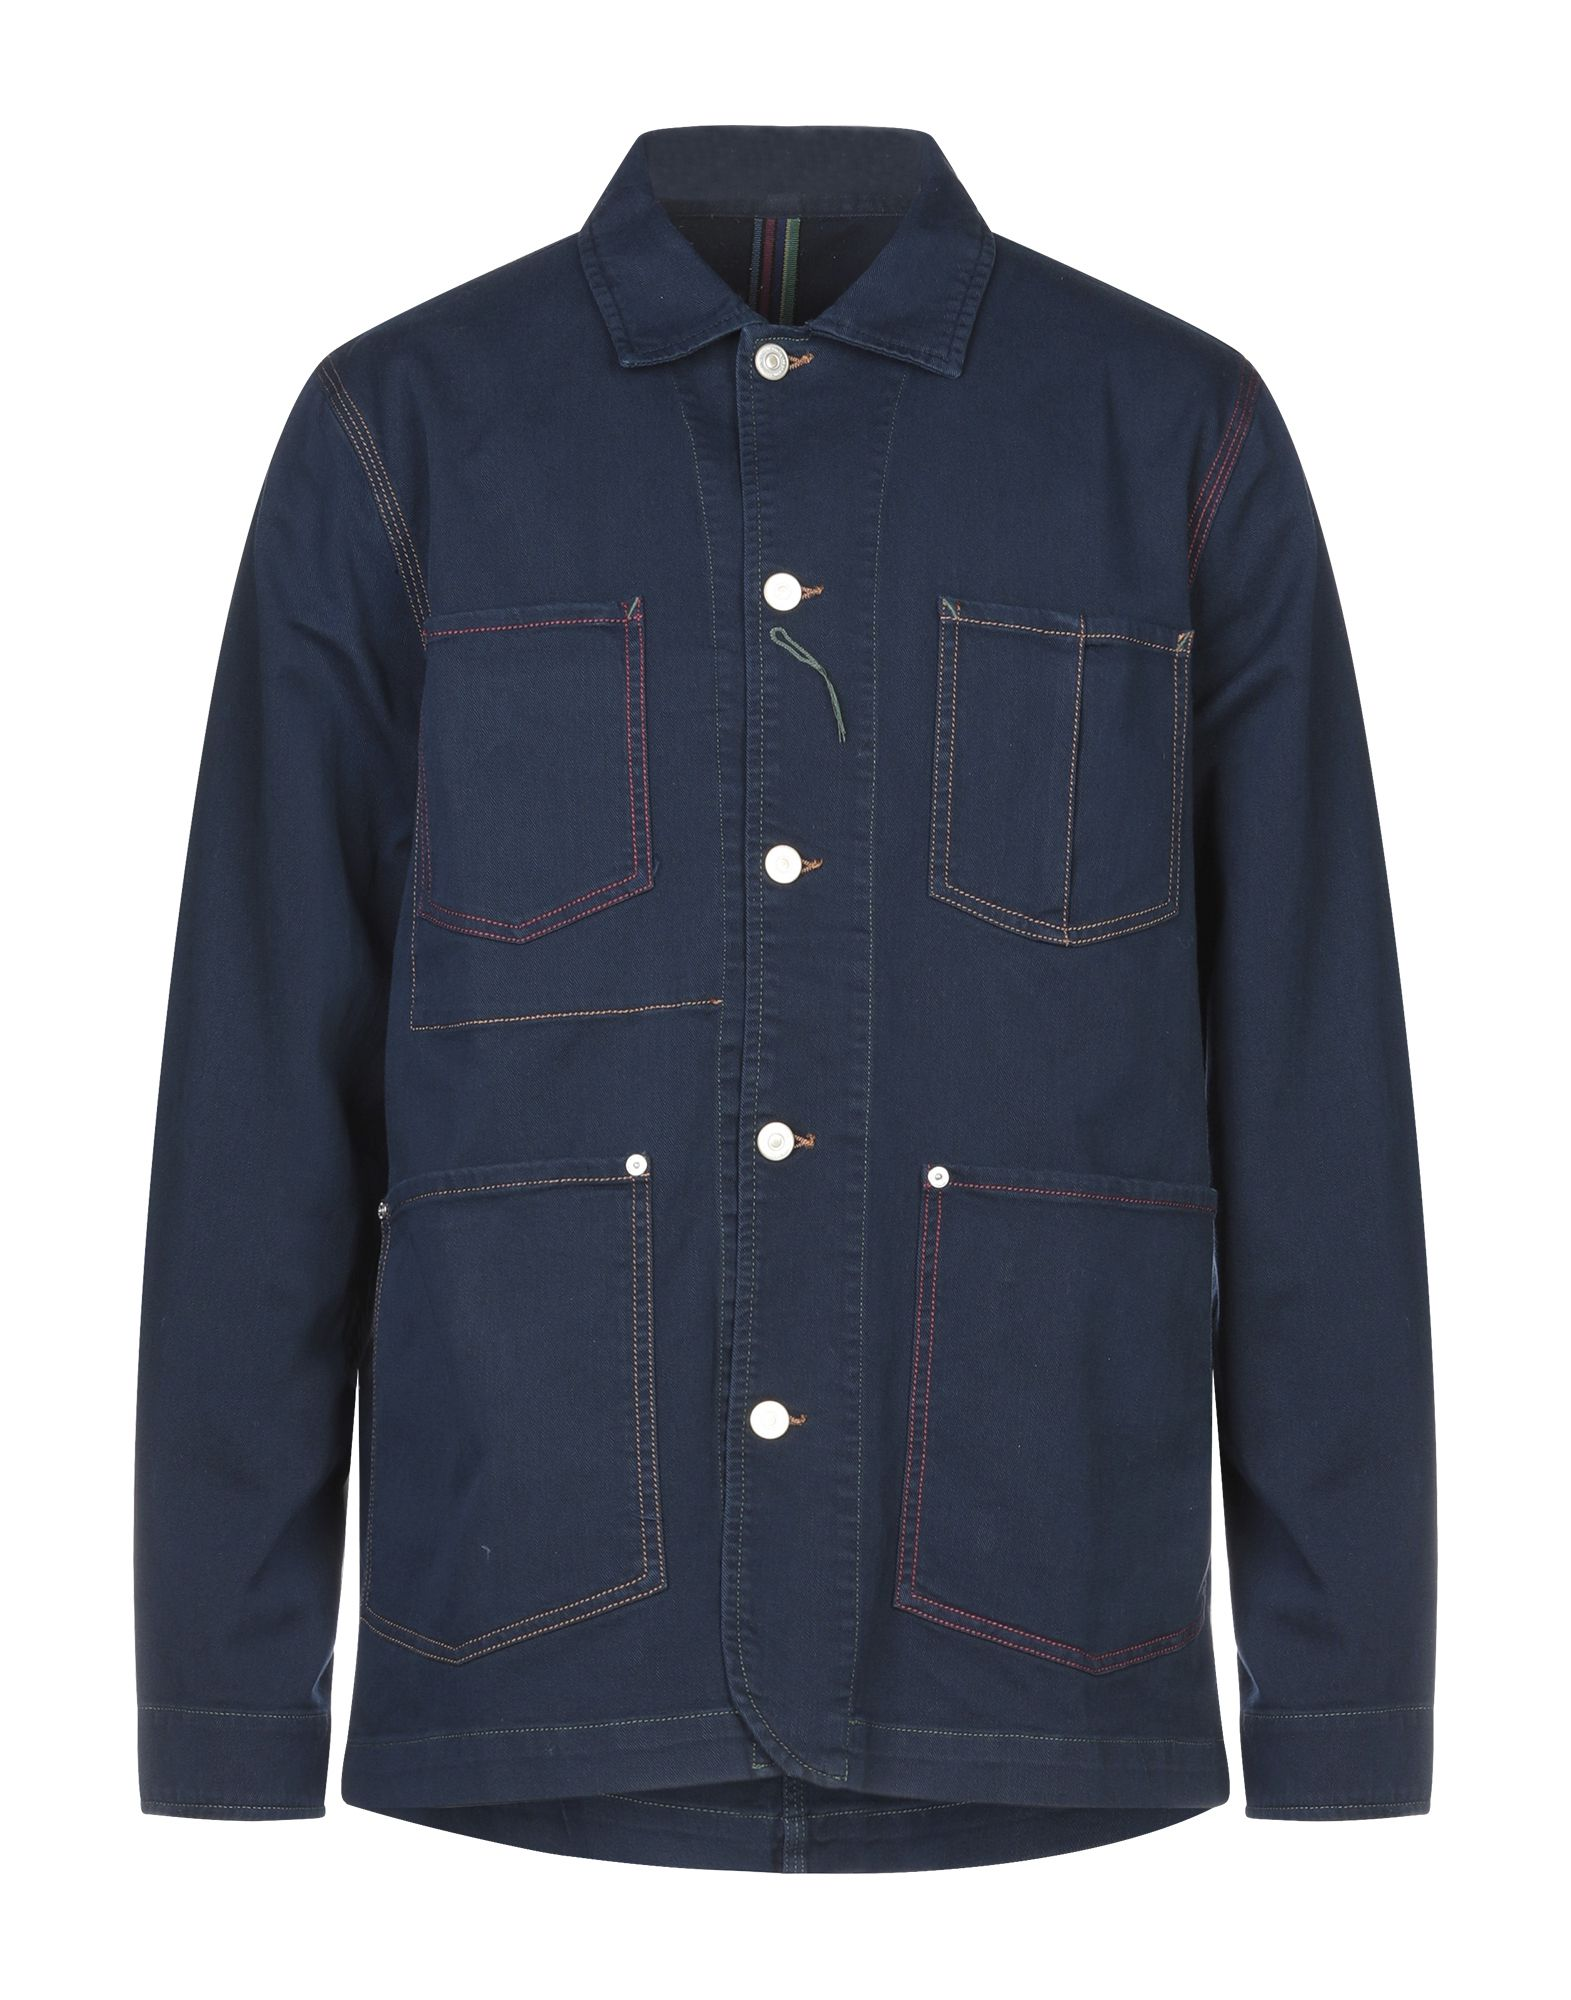 PS PAUL SMITH Denim outerwear - Item 42796260